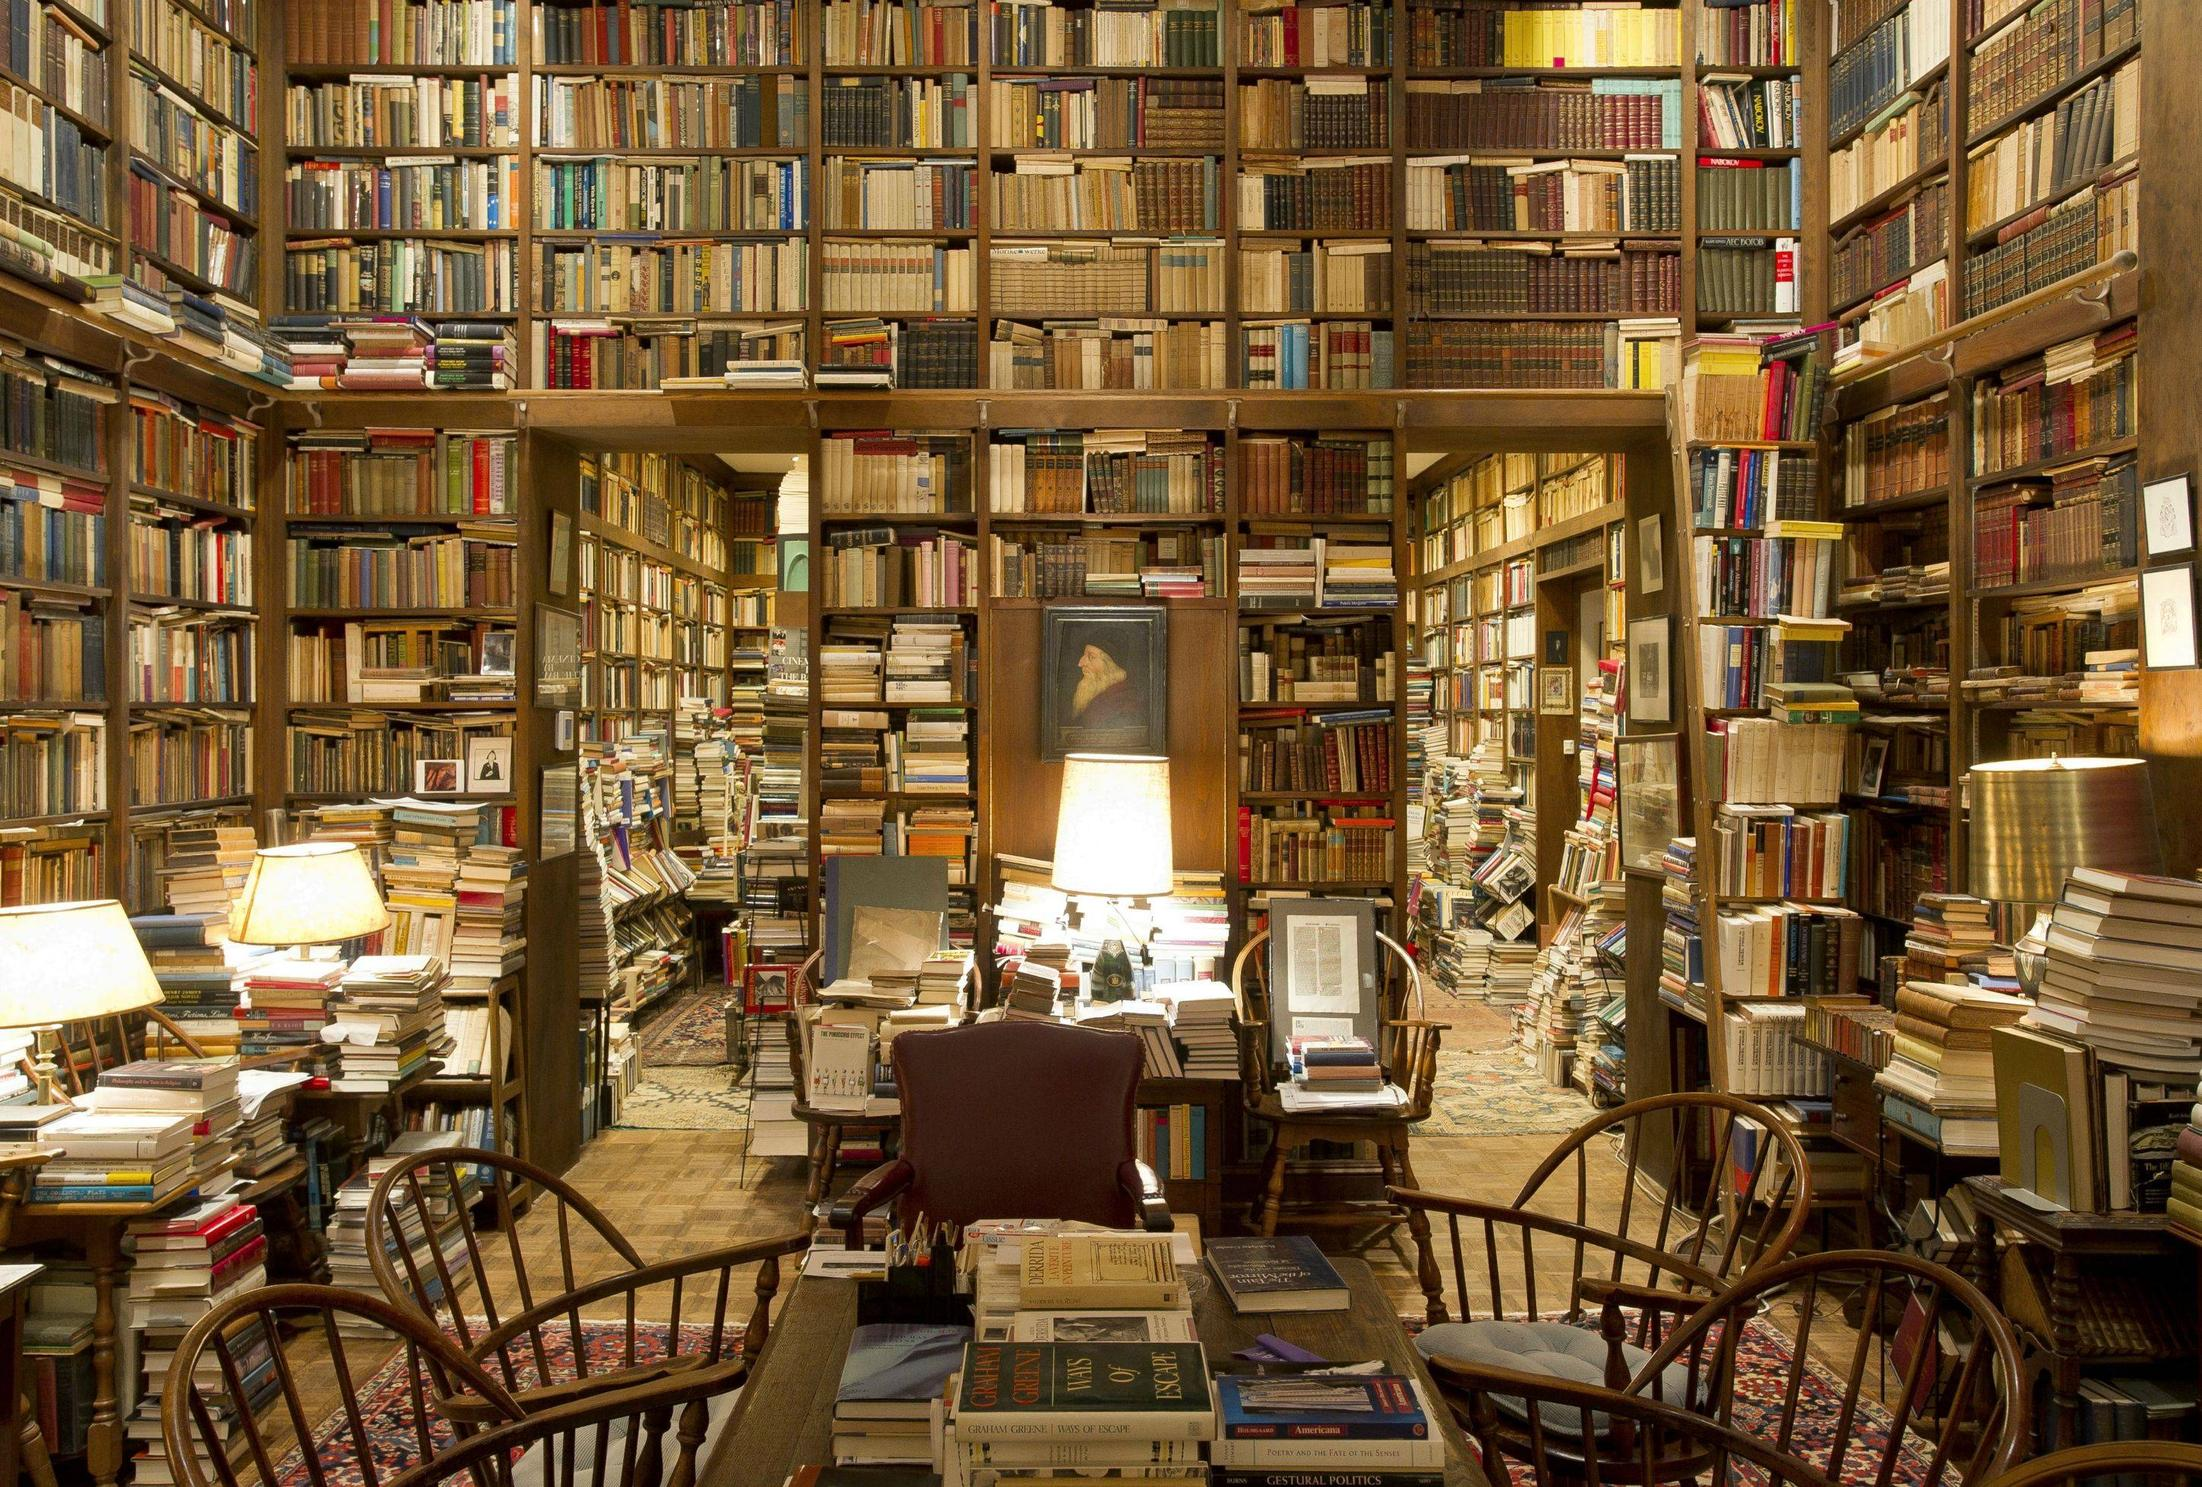 Library Wallpaper Hd - Cozy Library , HD Wallpaper & Backgrounds